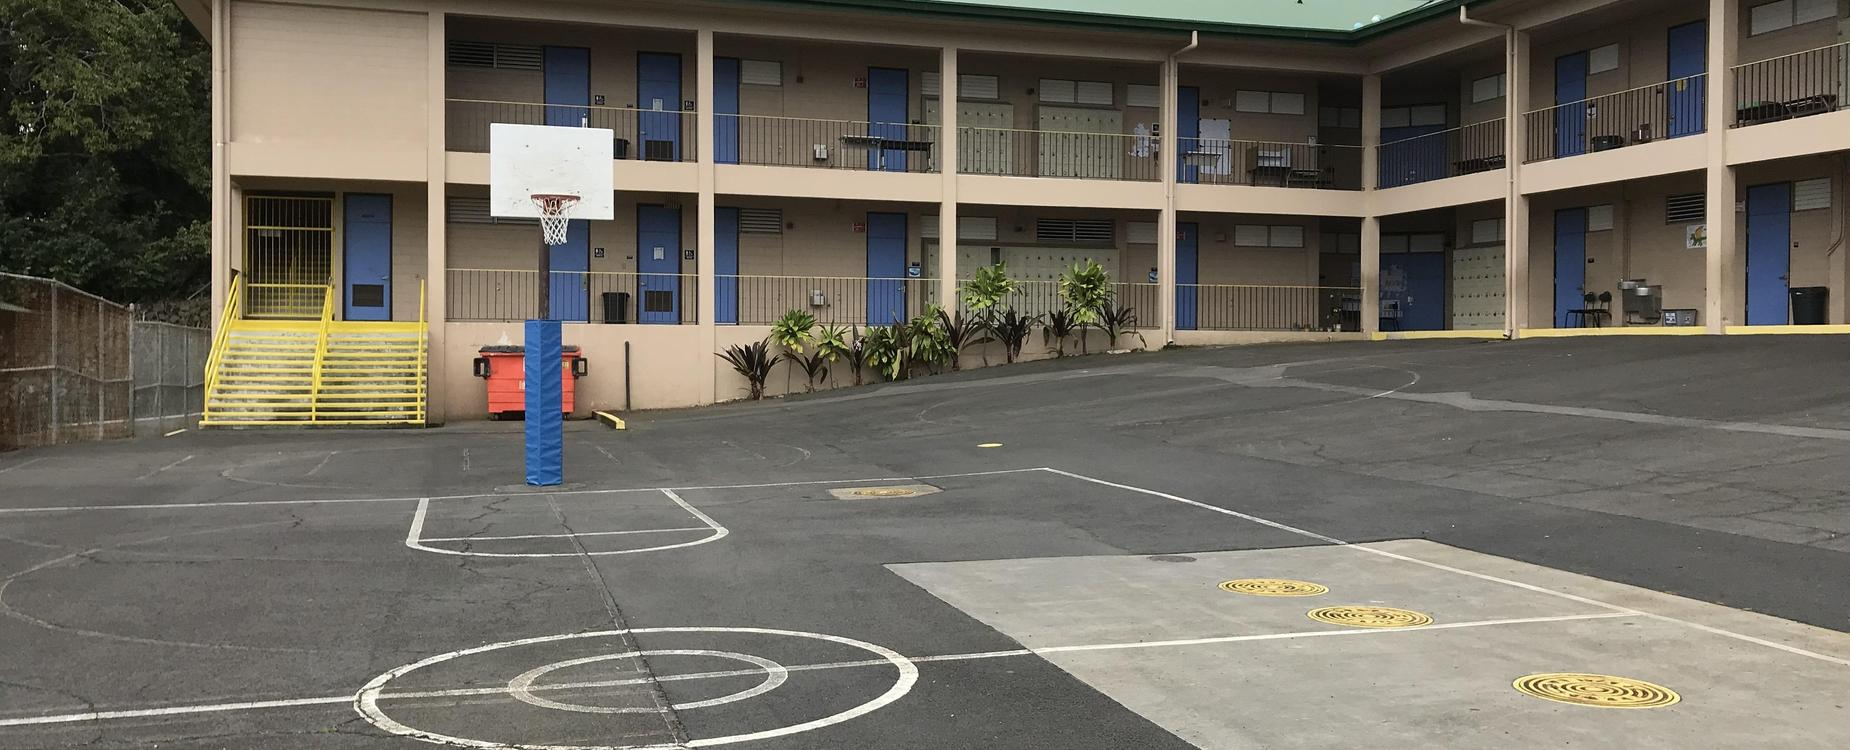 Photo of E building basketball court area